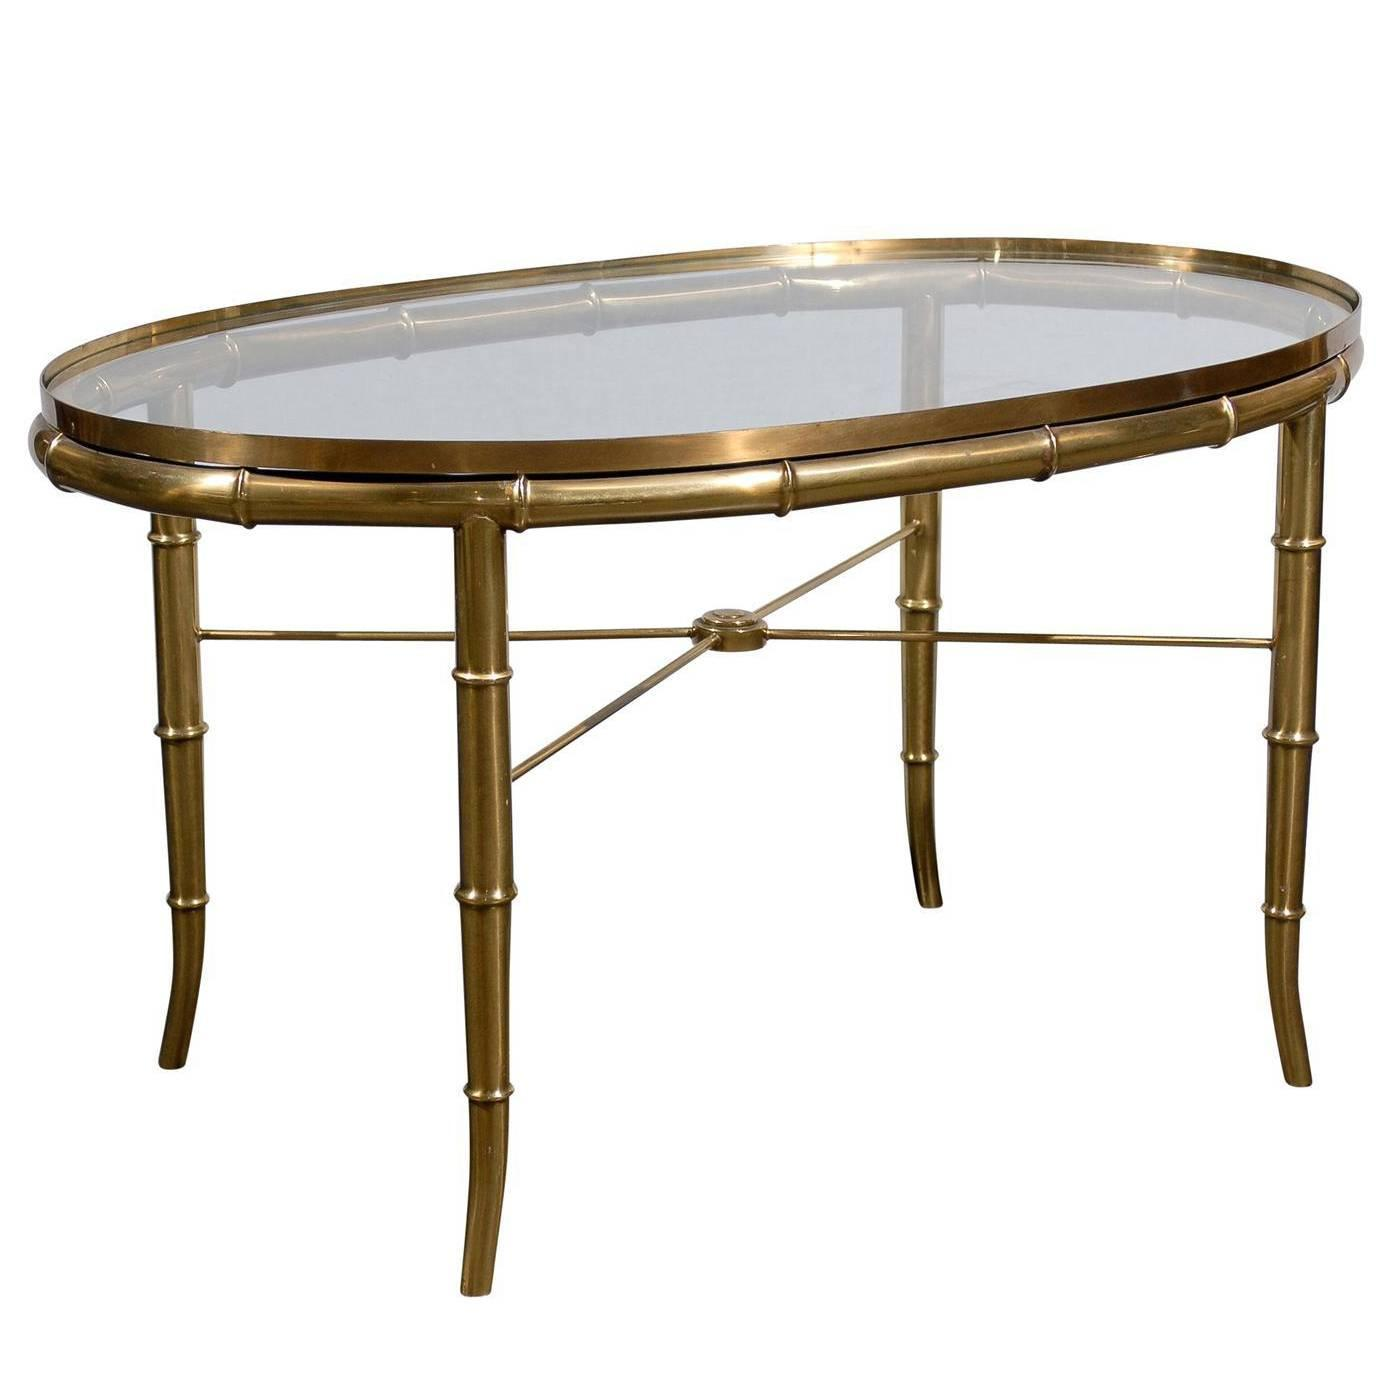 Oval brass glass top cocktail or coffee table at 1stdibs for Oval glass coffee table